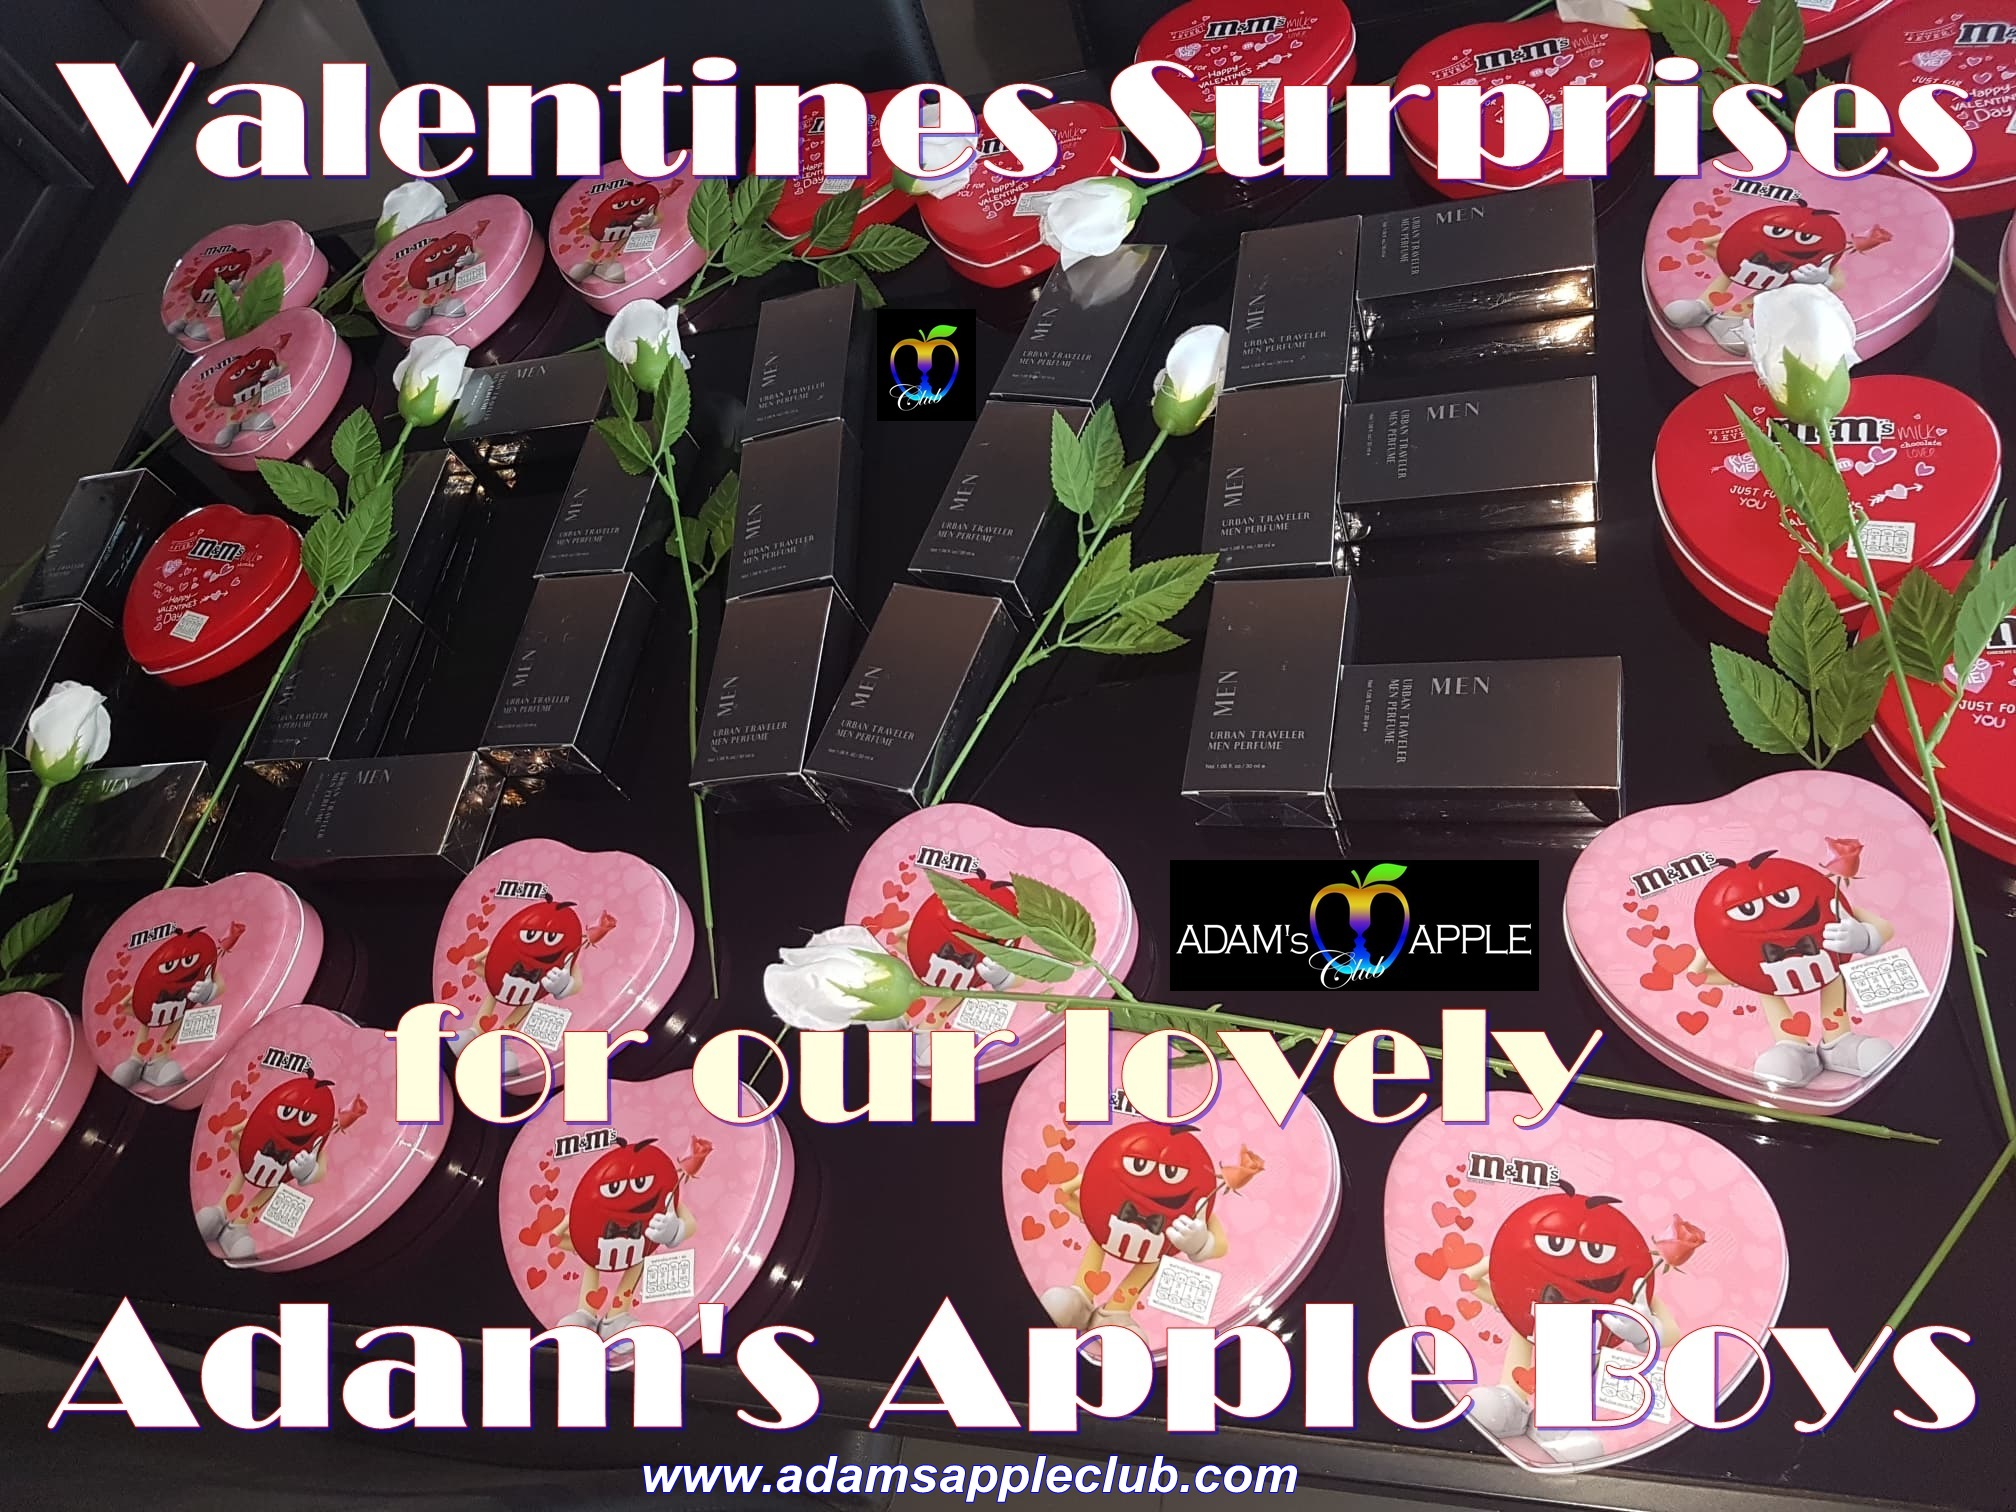 Valentines Surprises for our lovely Adams's Apple Boys